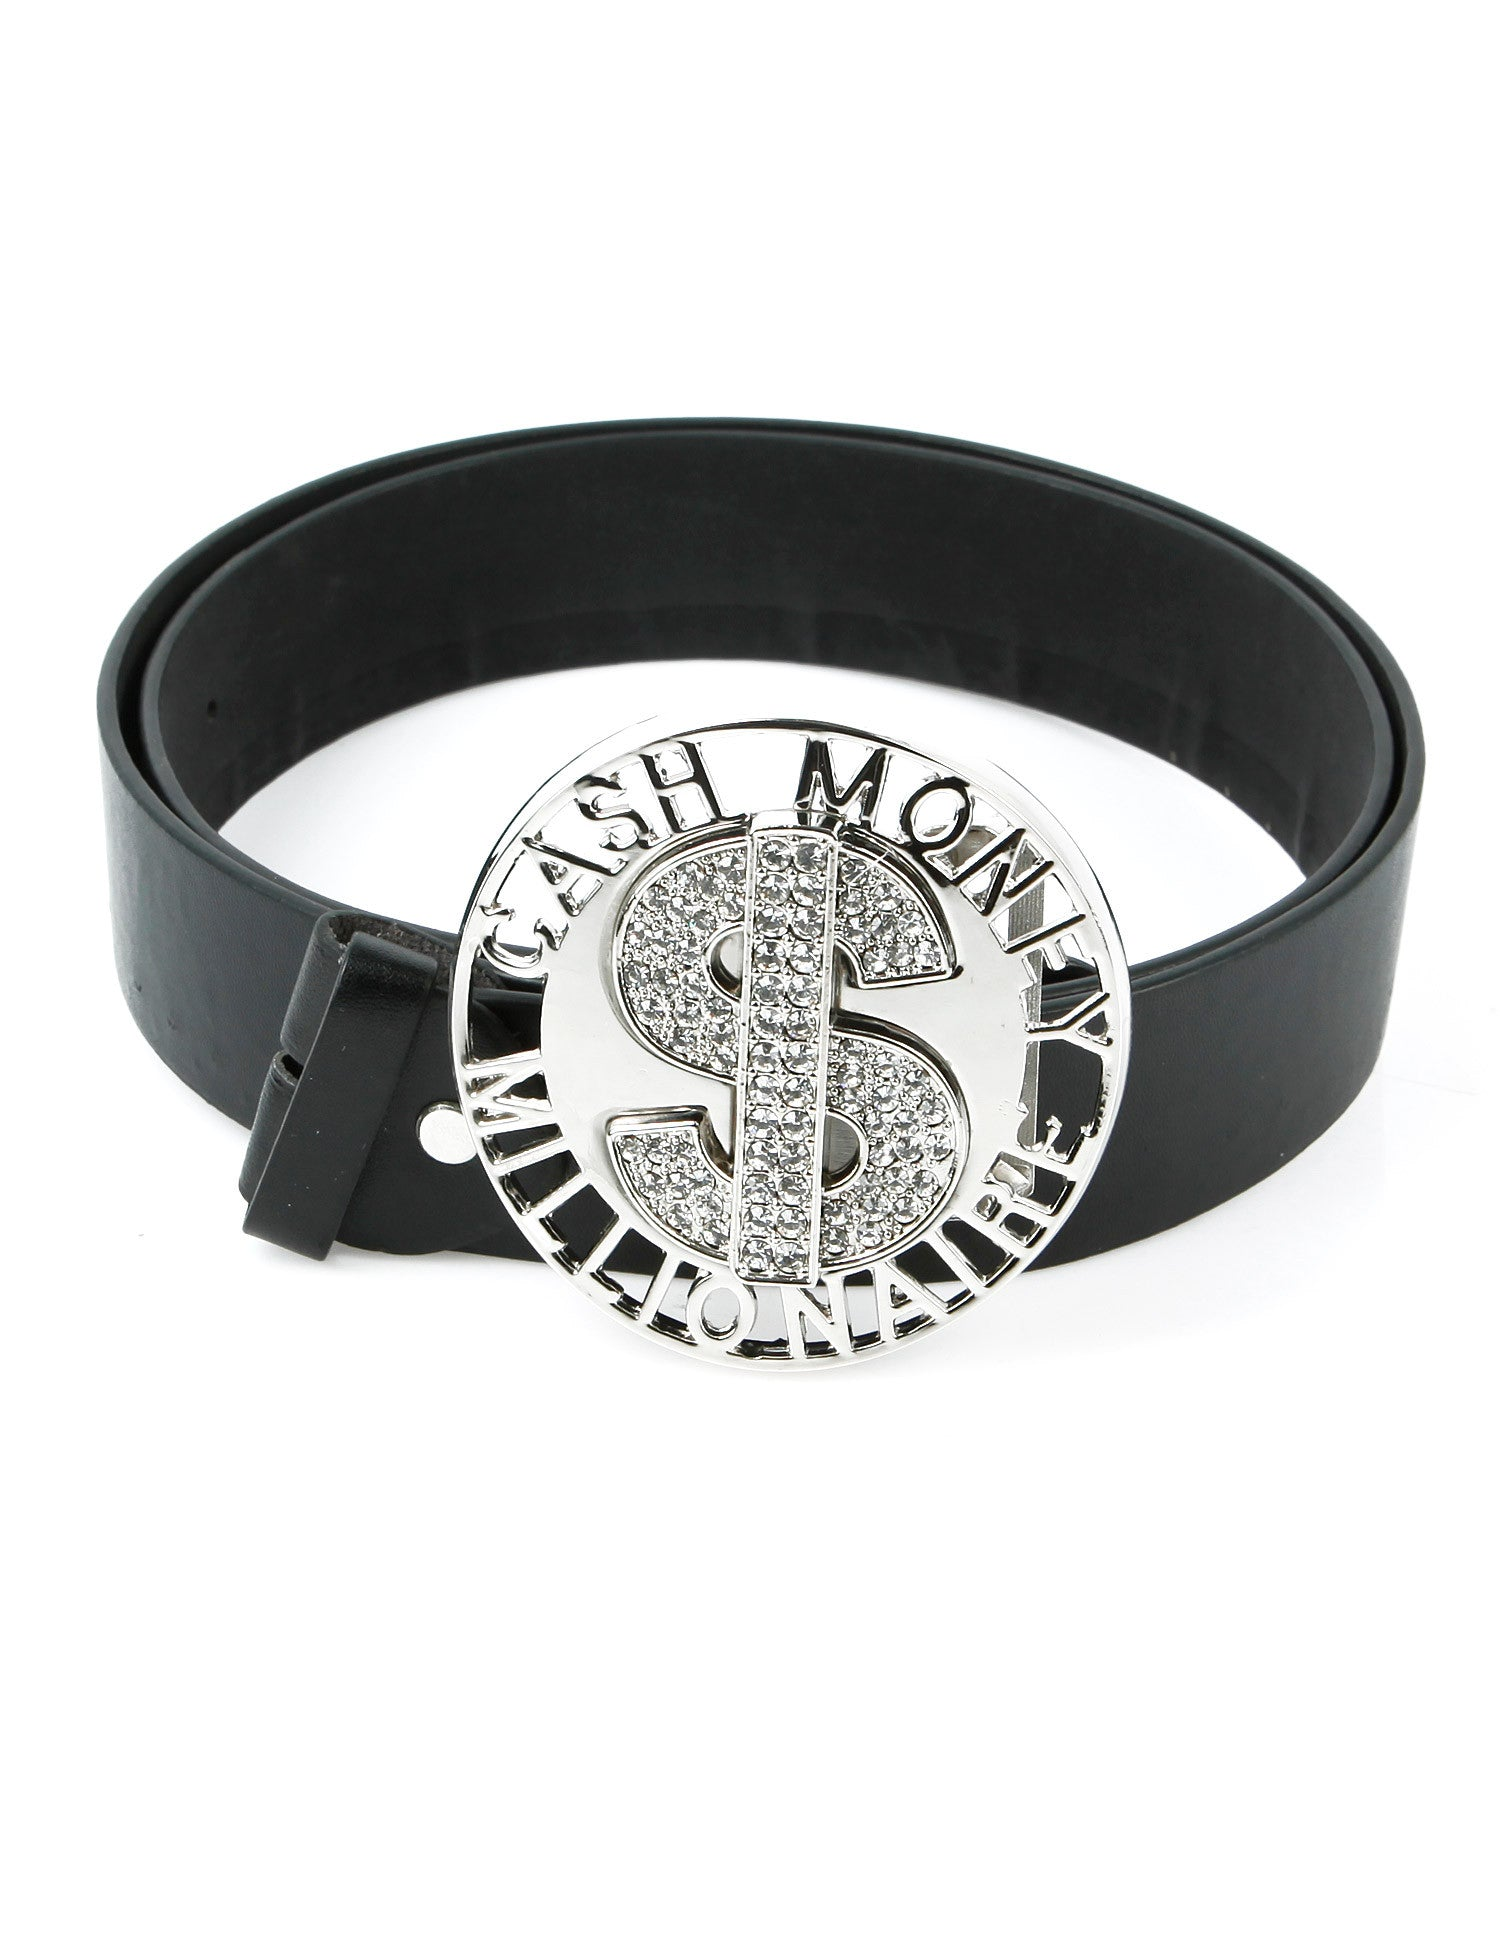 Cash Money Millionaire Belt Buckle Silver